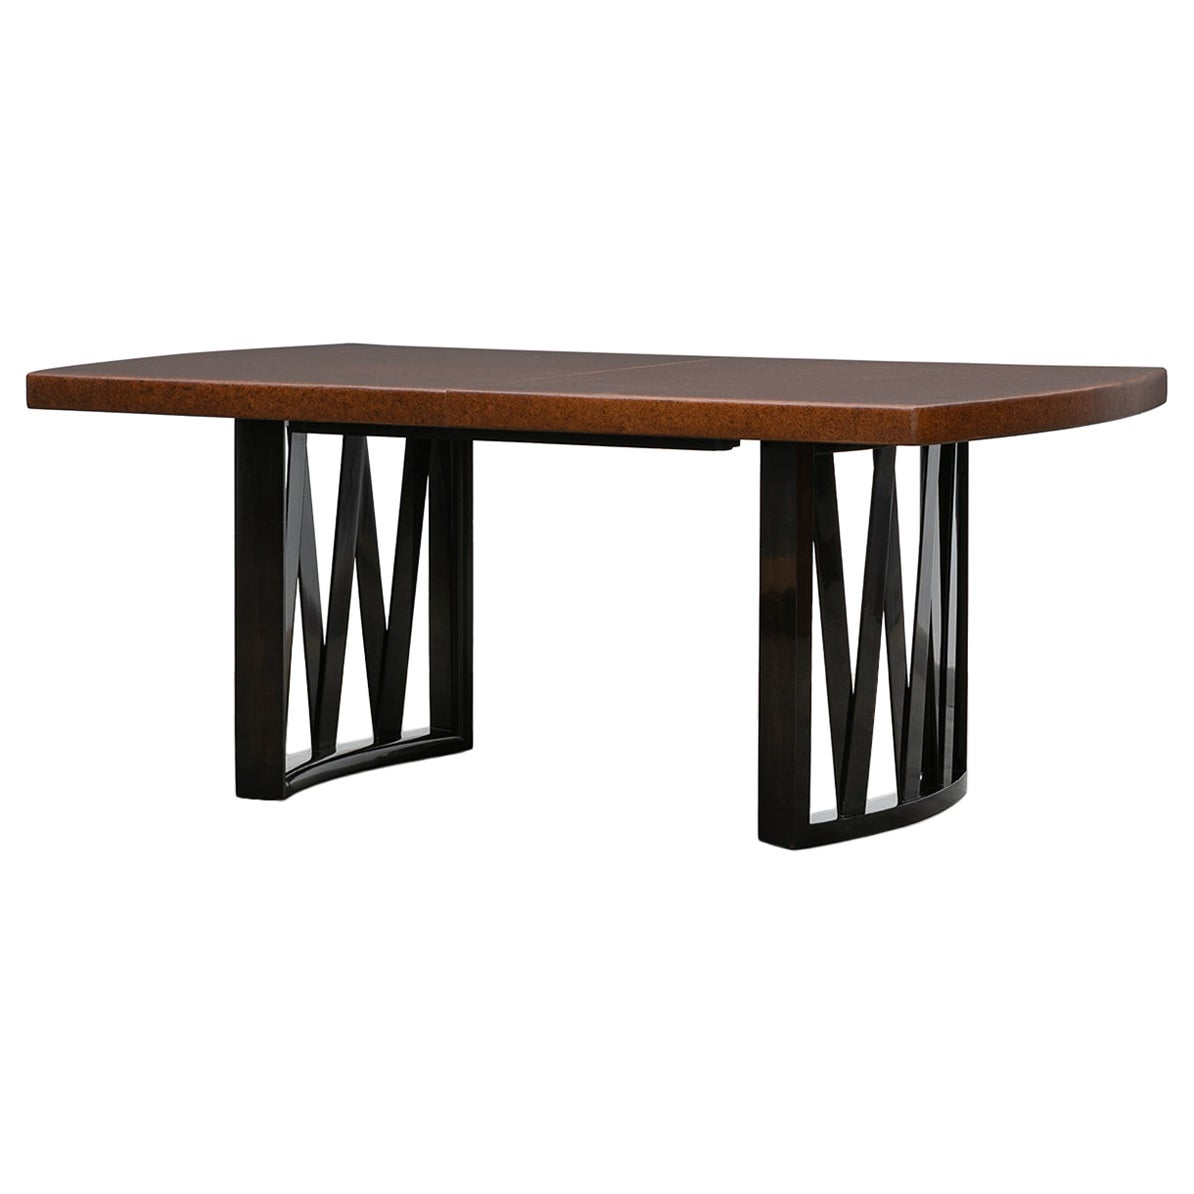 1940s Brown Cork and Mahogany Dining Table by Paul Frankl